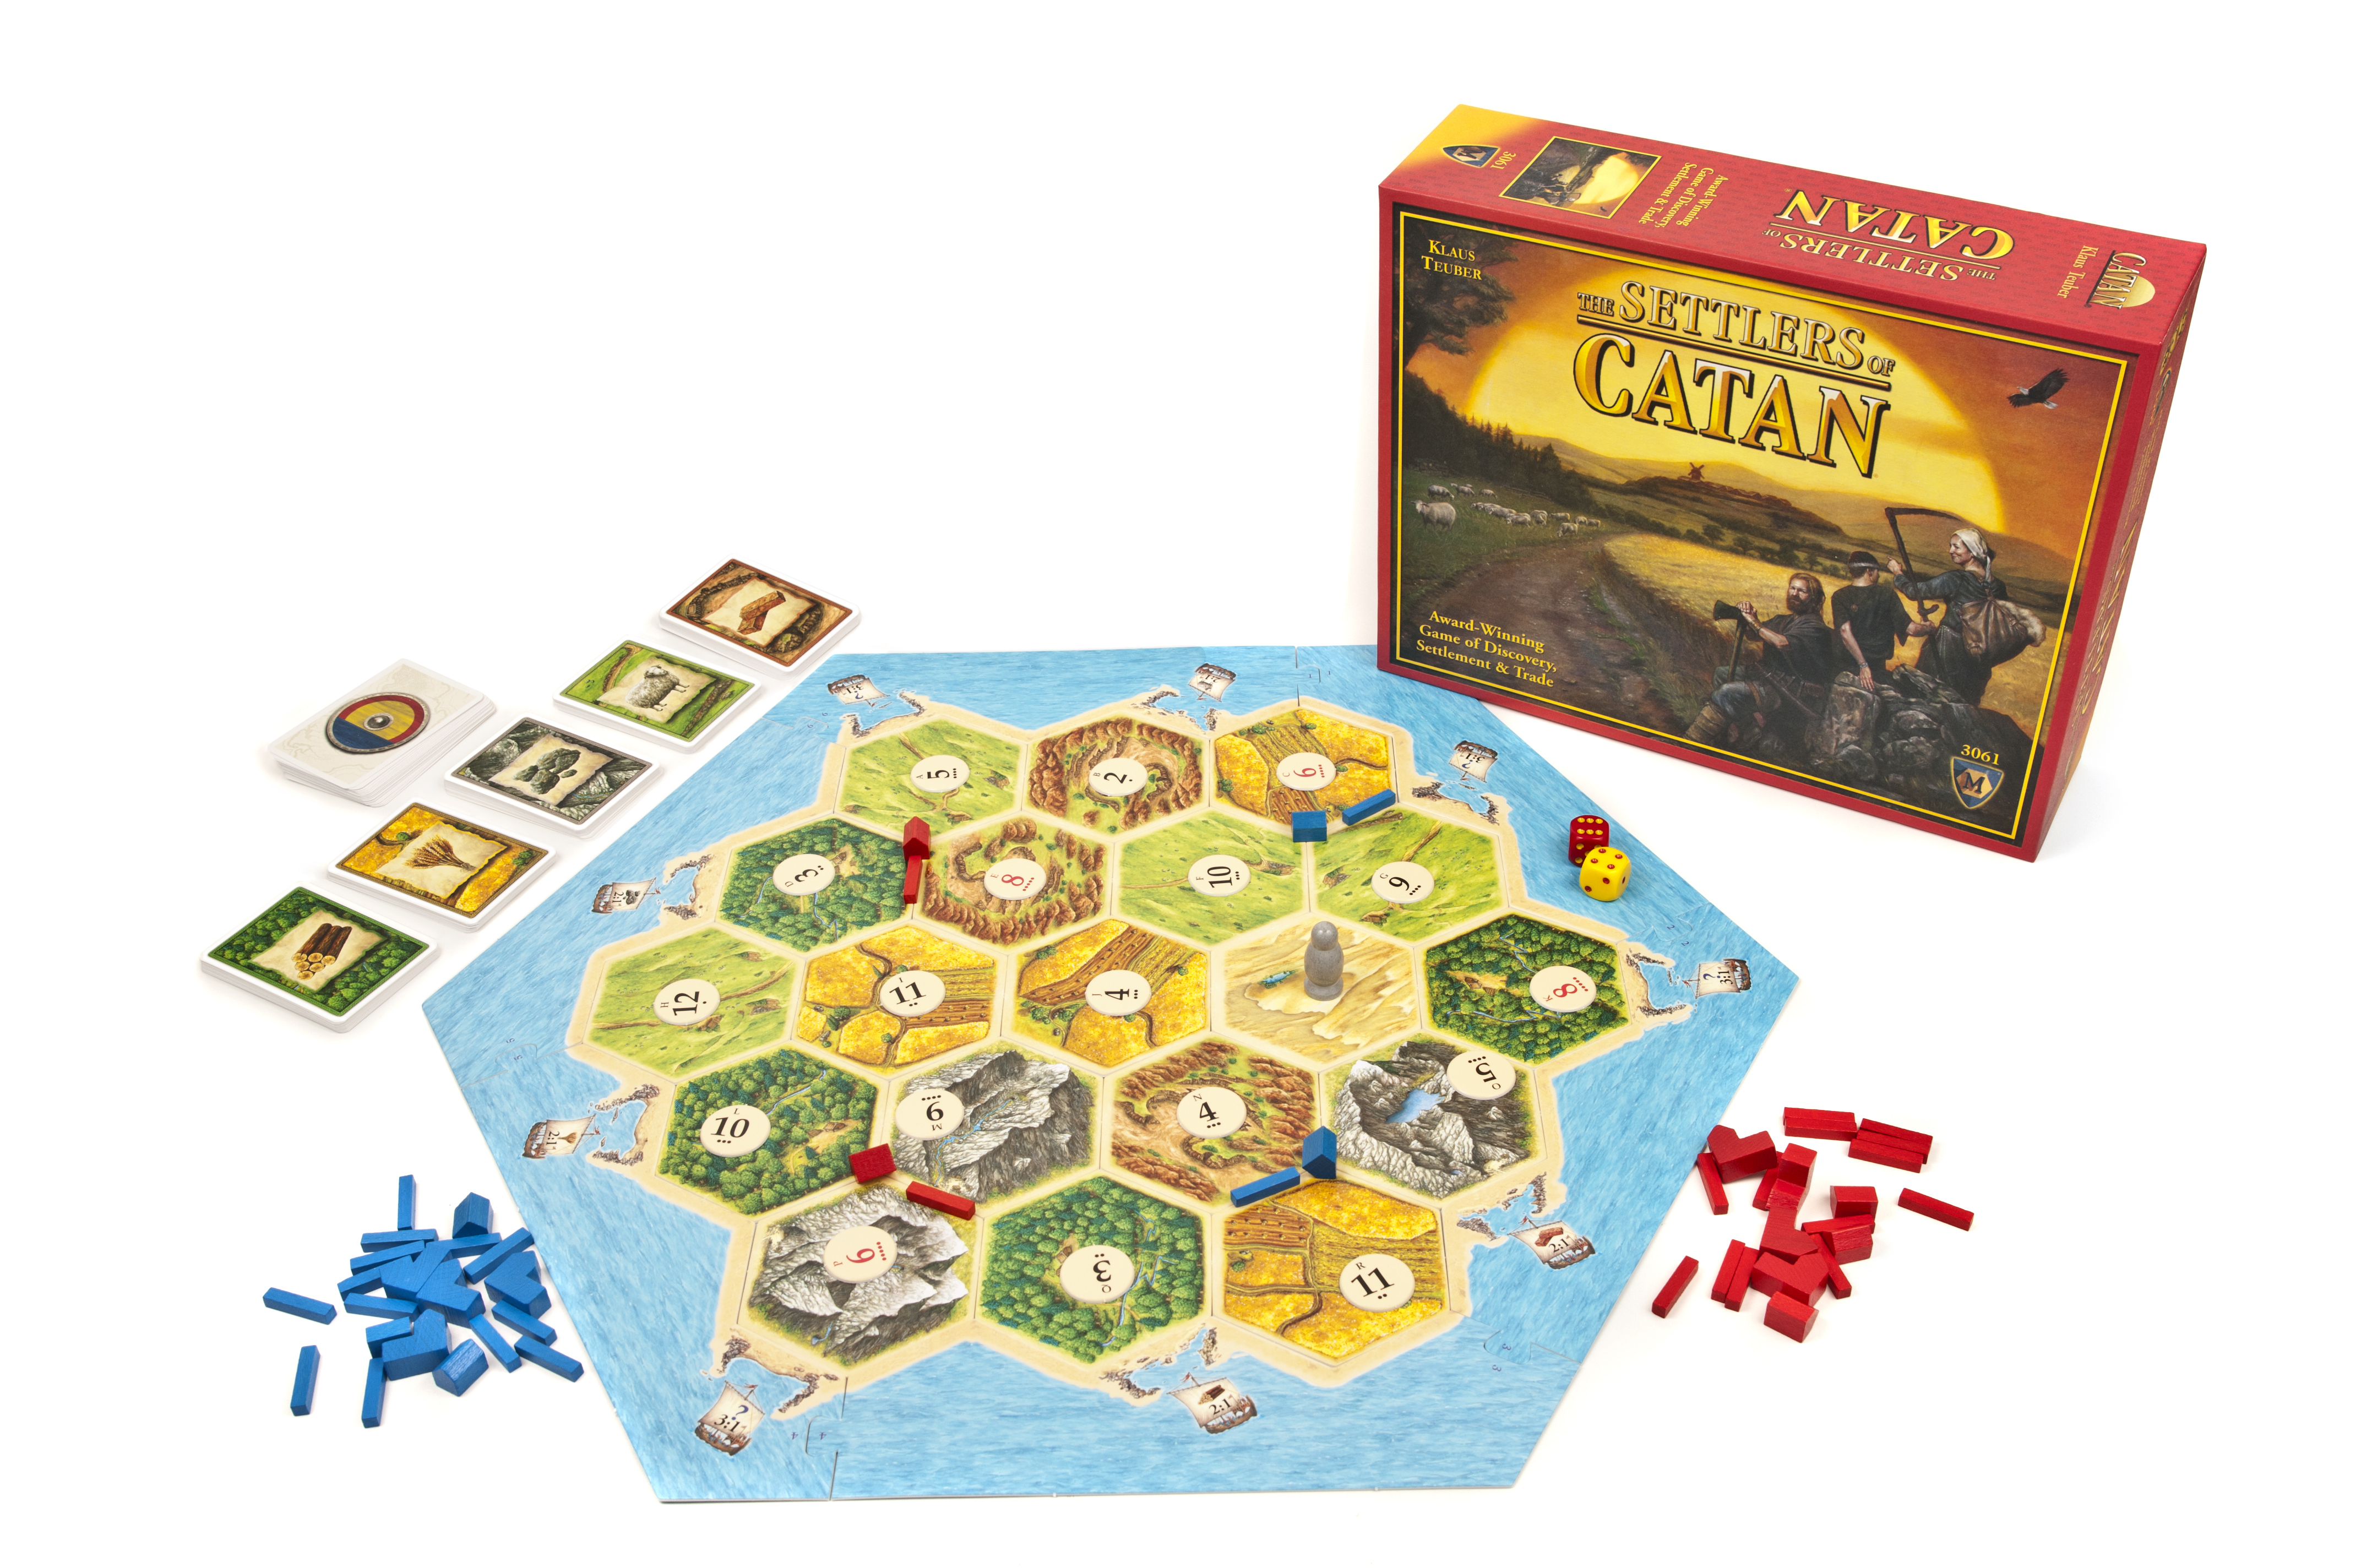 Settlers of Catan Game Board and Box